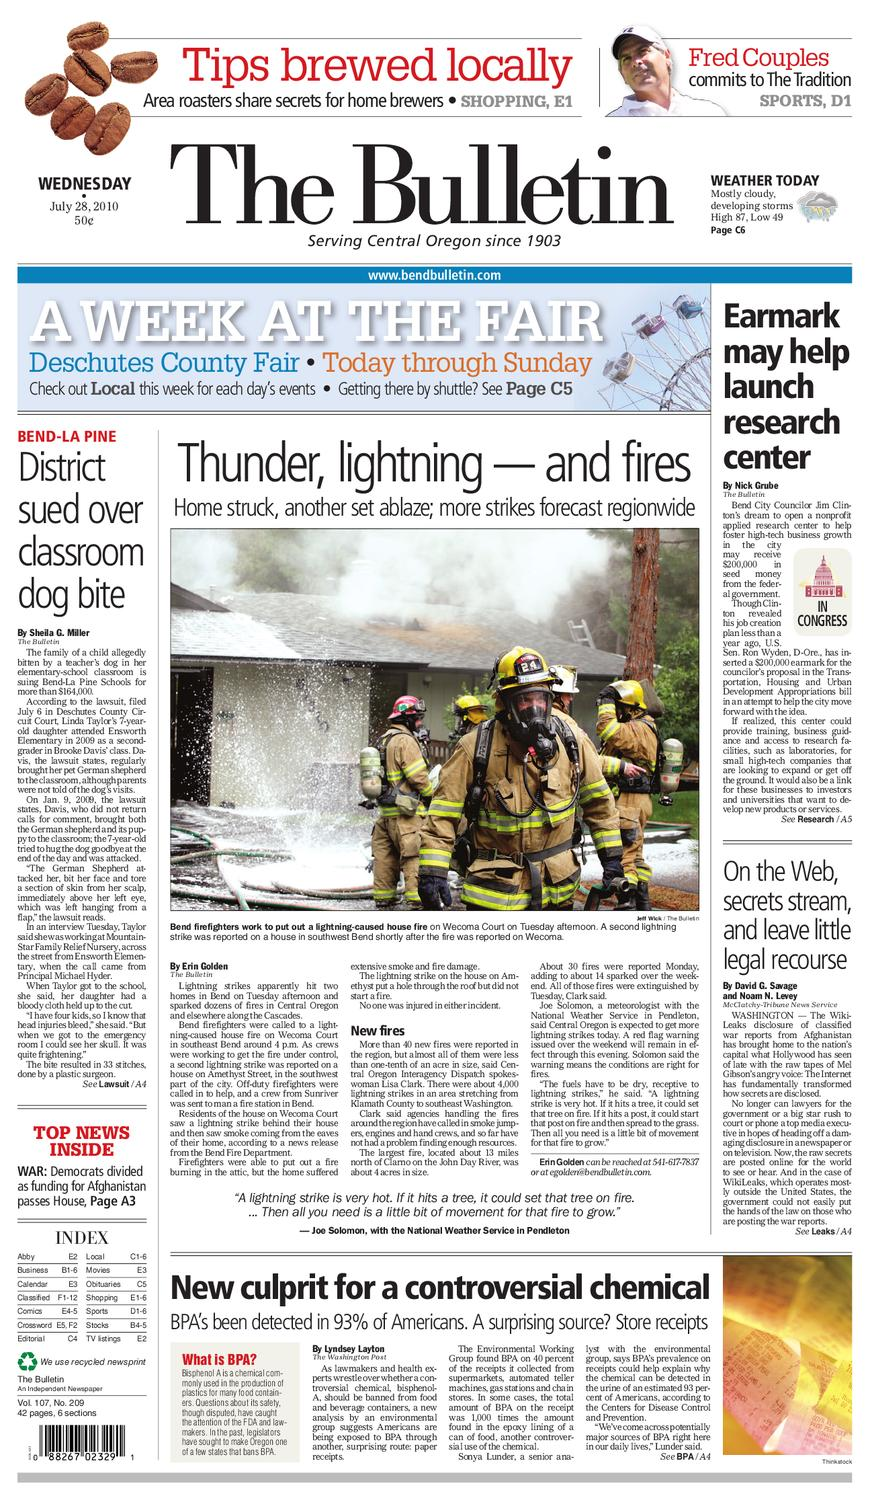 119b44bd8eec Bulletin Daily Paper 07 28 10 by Western Communications